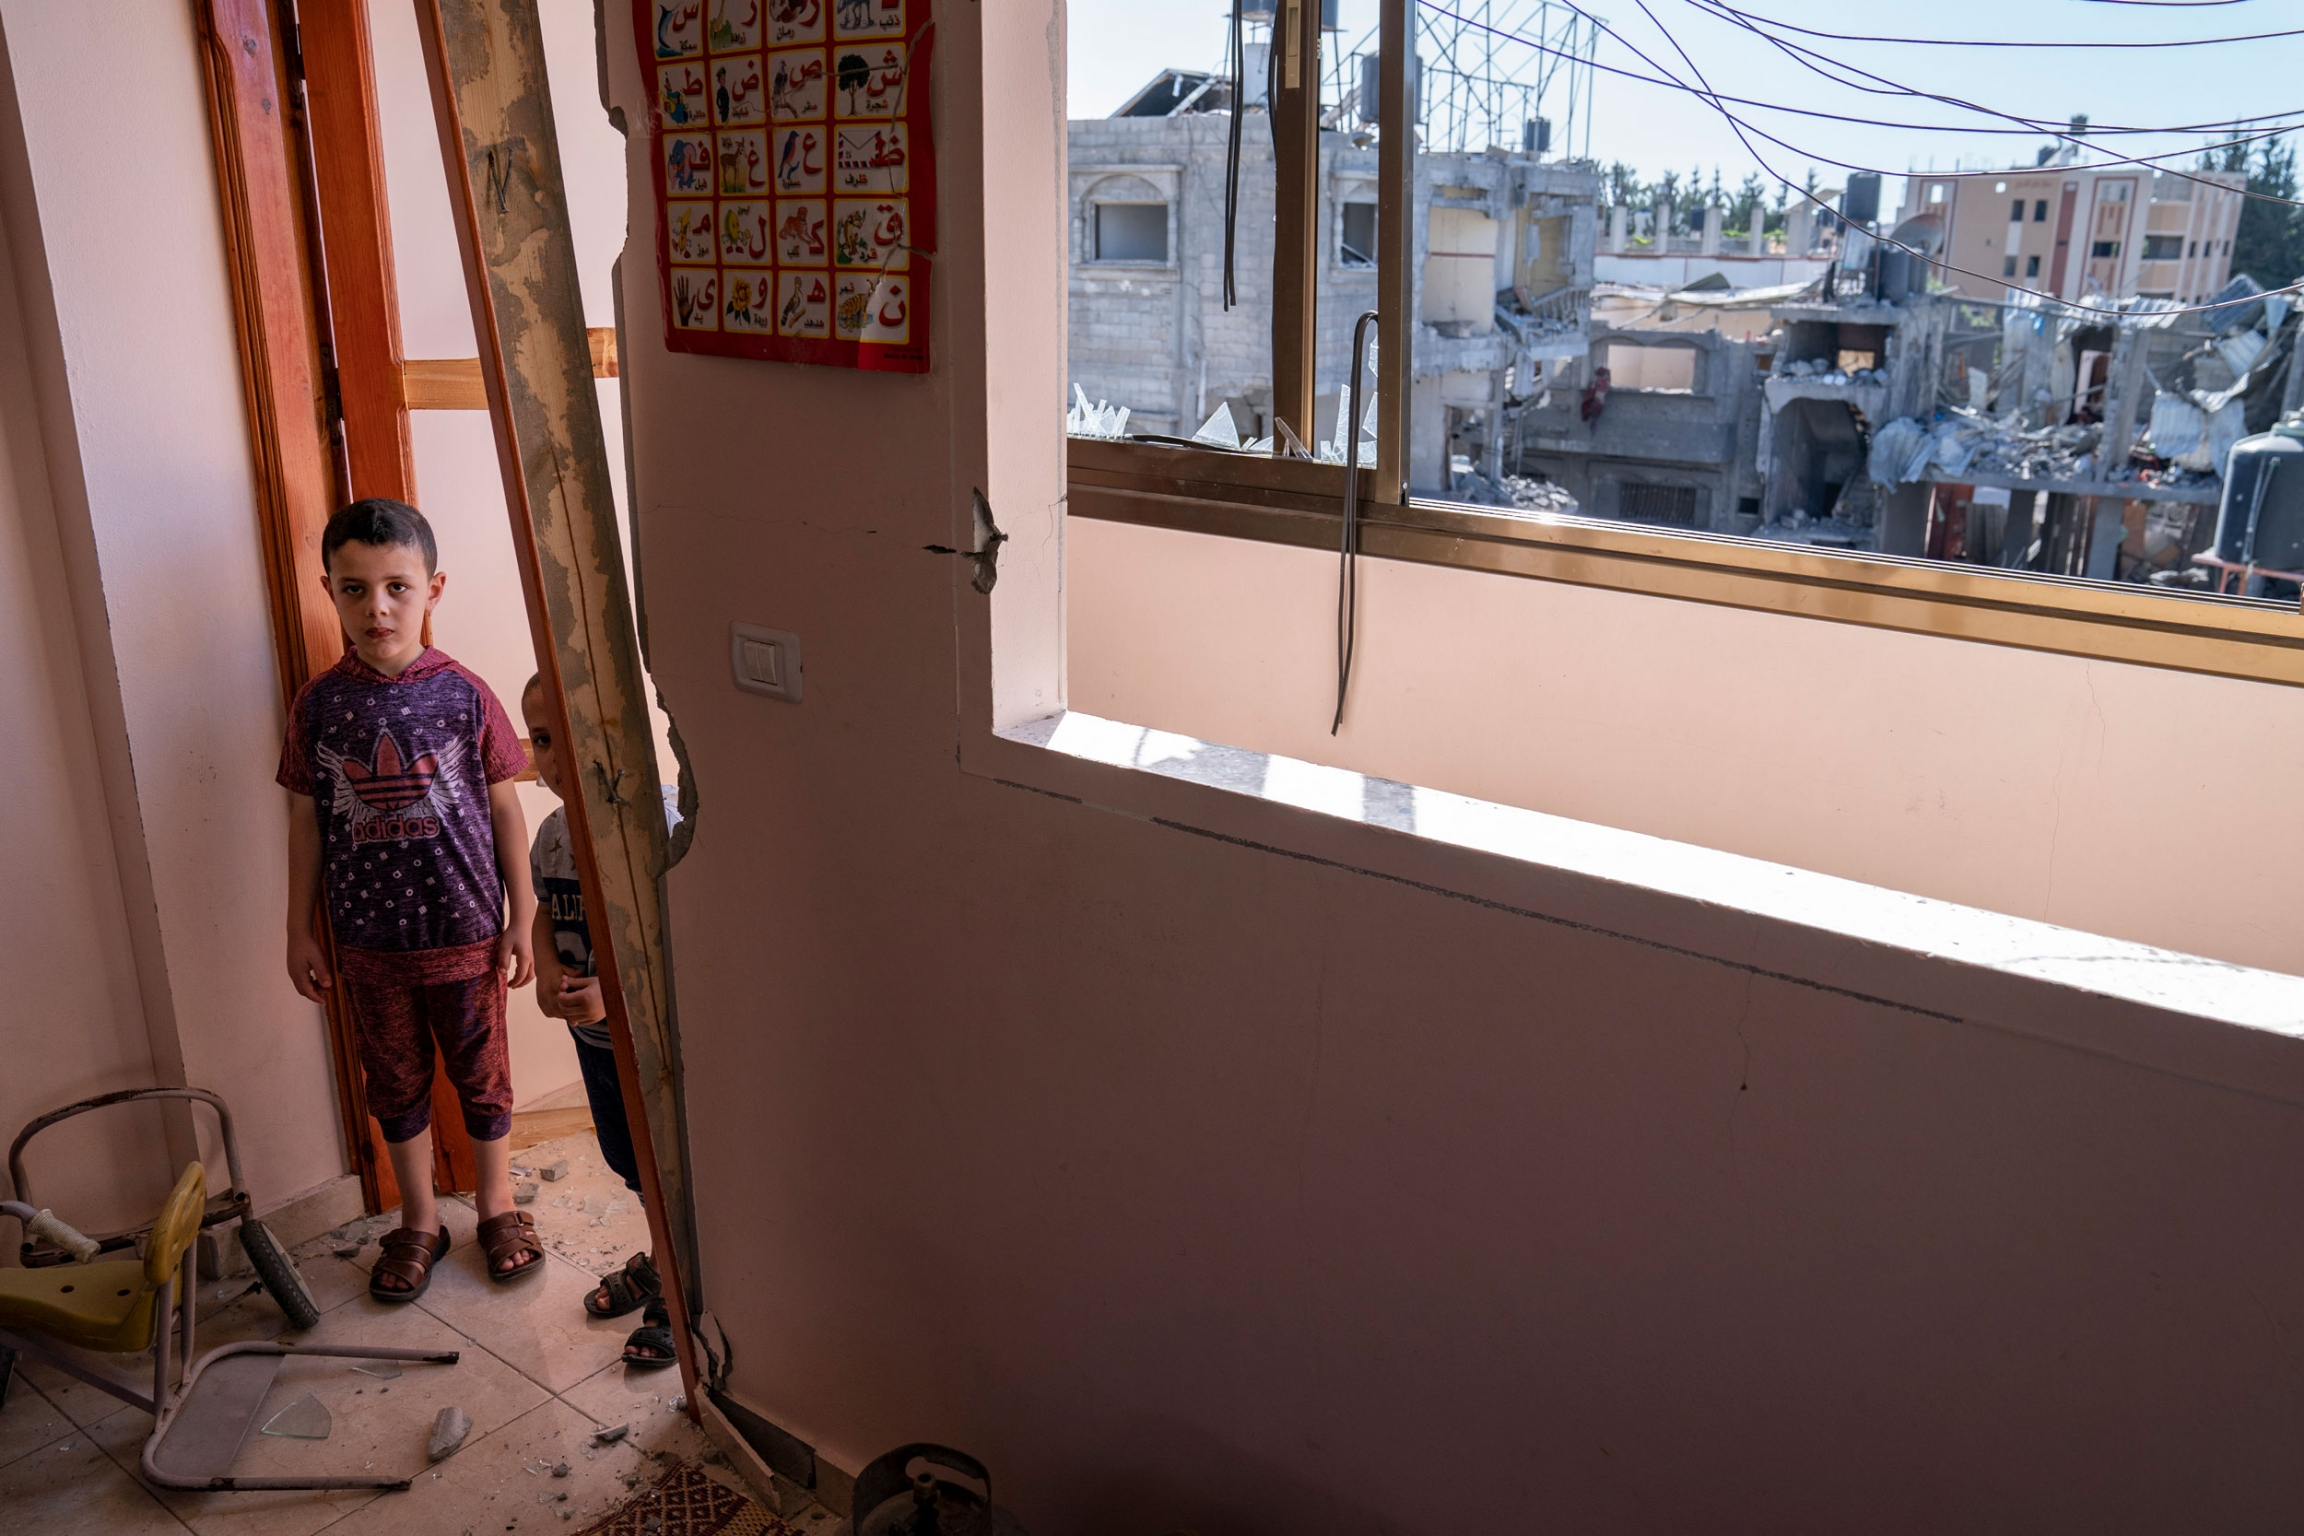 Two young boys are shown standing in a damaged door frame.